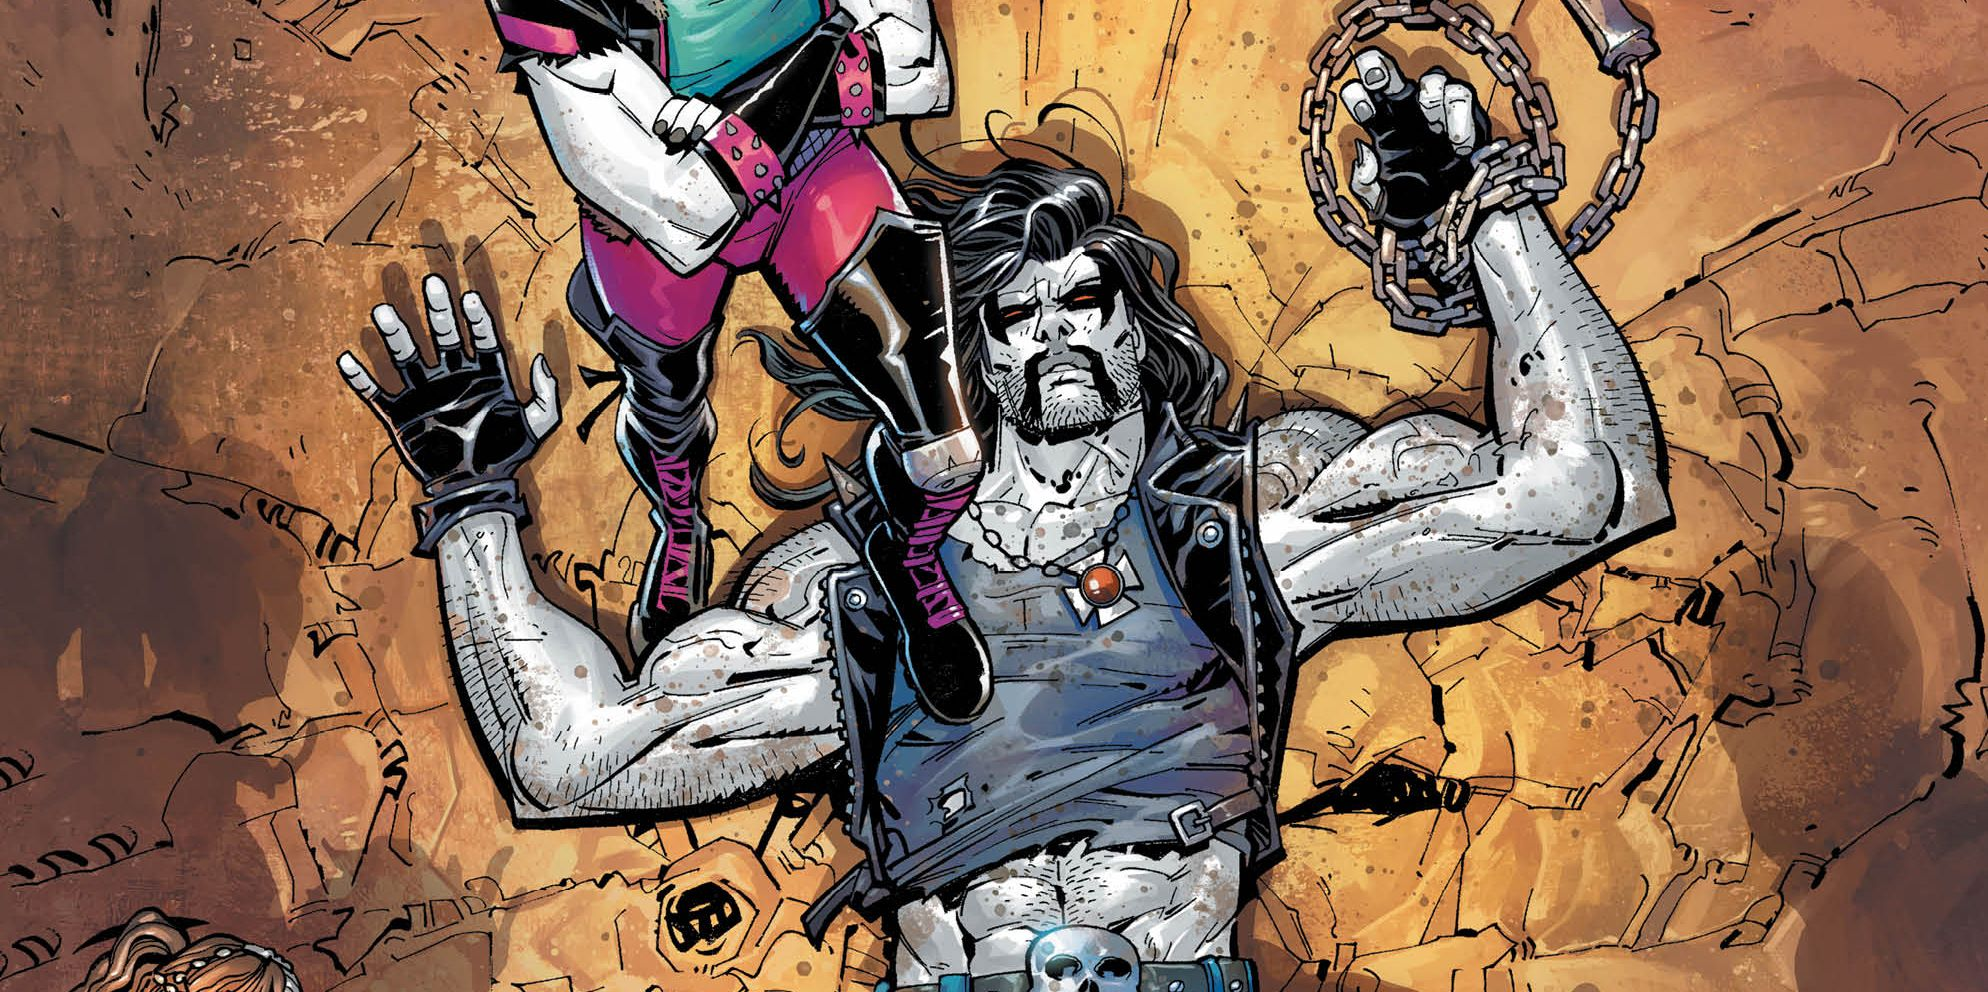 EXCLUSIVE: Teen Titans #32 Preview Reveals Aftermath of Lobo's Rampage